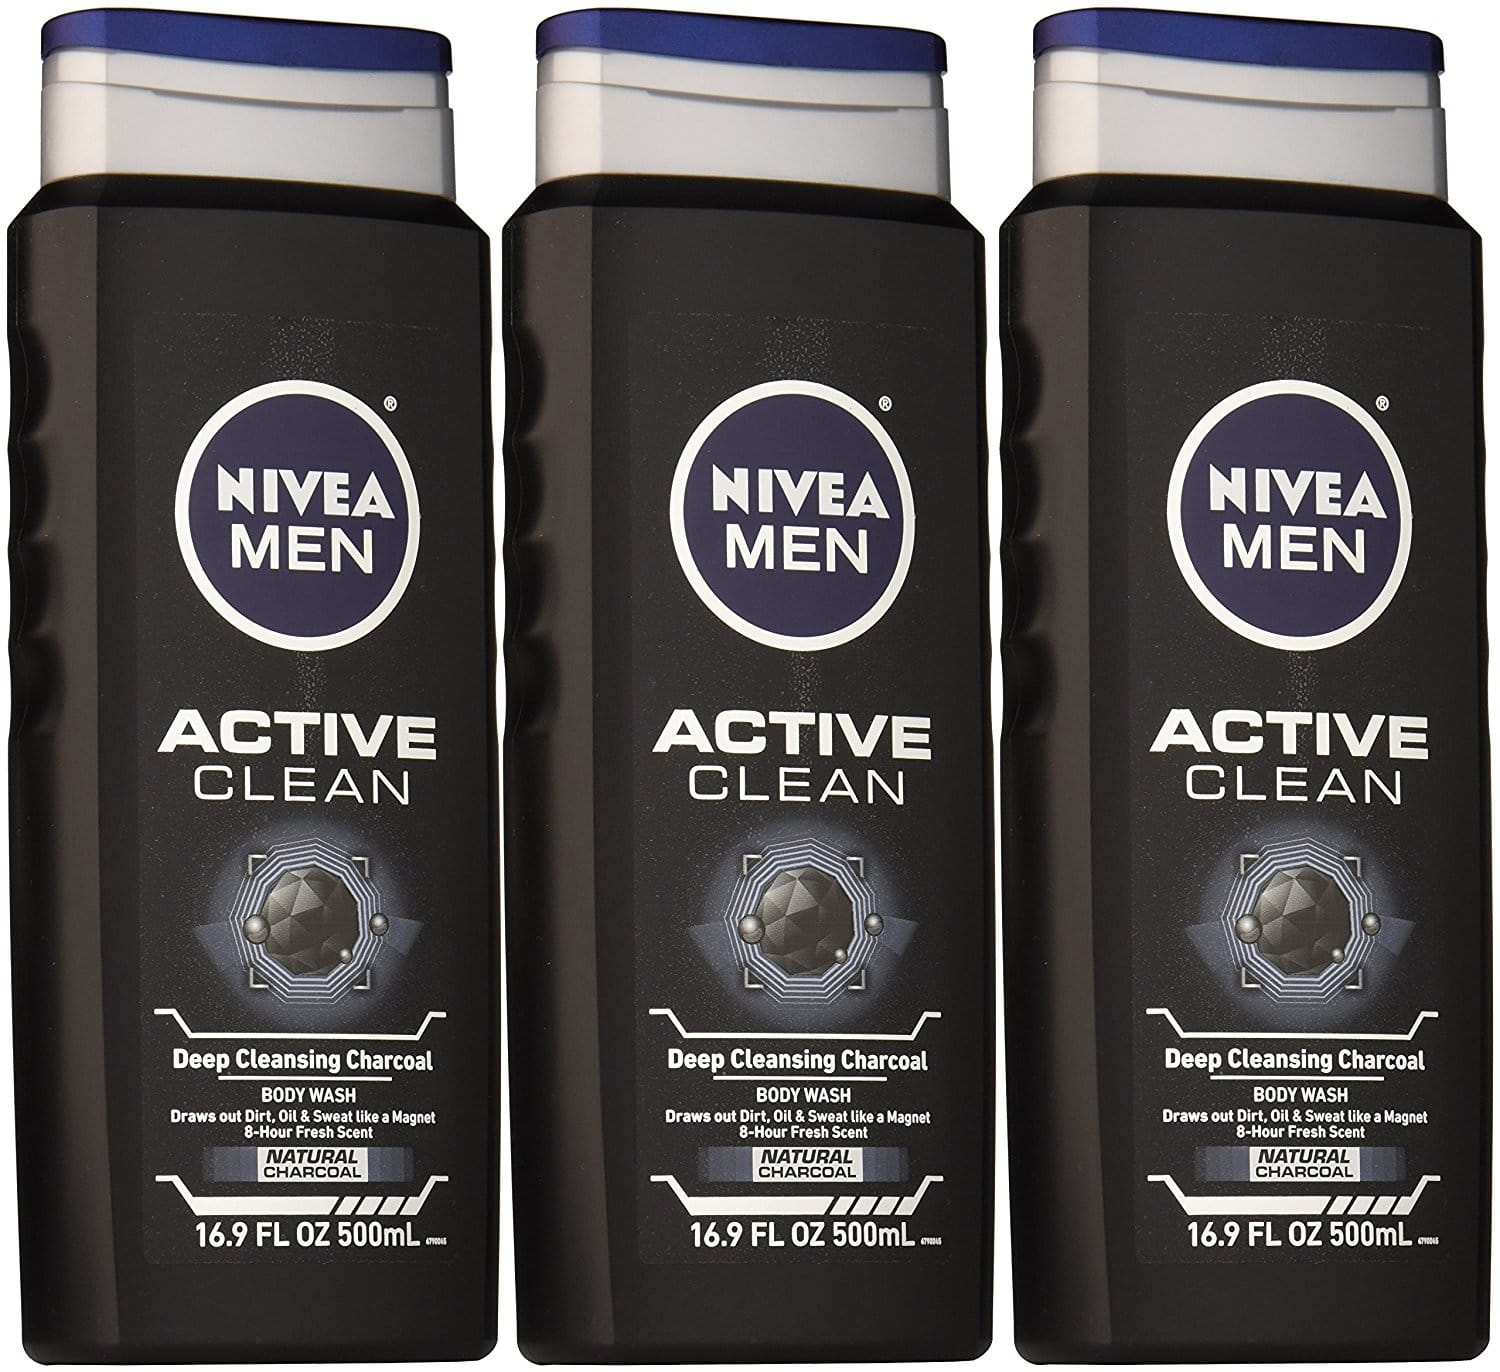 3-Pack of 16.9-oz Nivea Men Active Clean Body Wash (Natural Charcoal) $7.16 or less w/ S&S + Free S&H